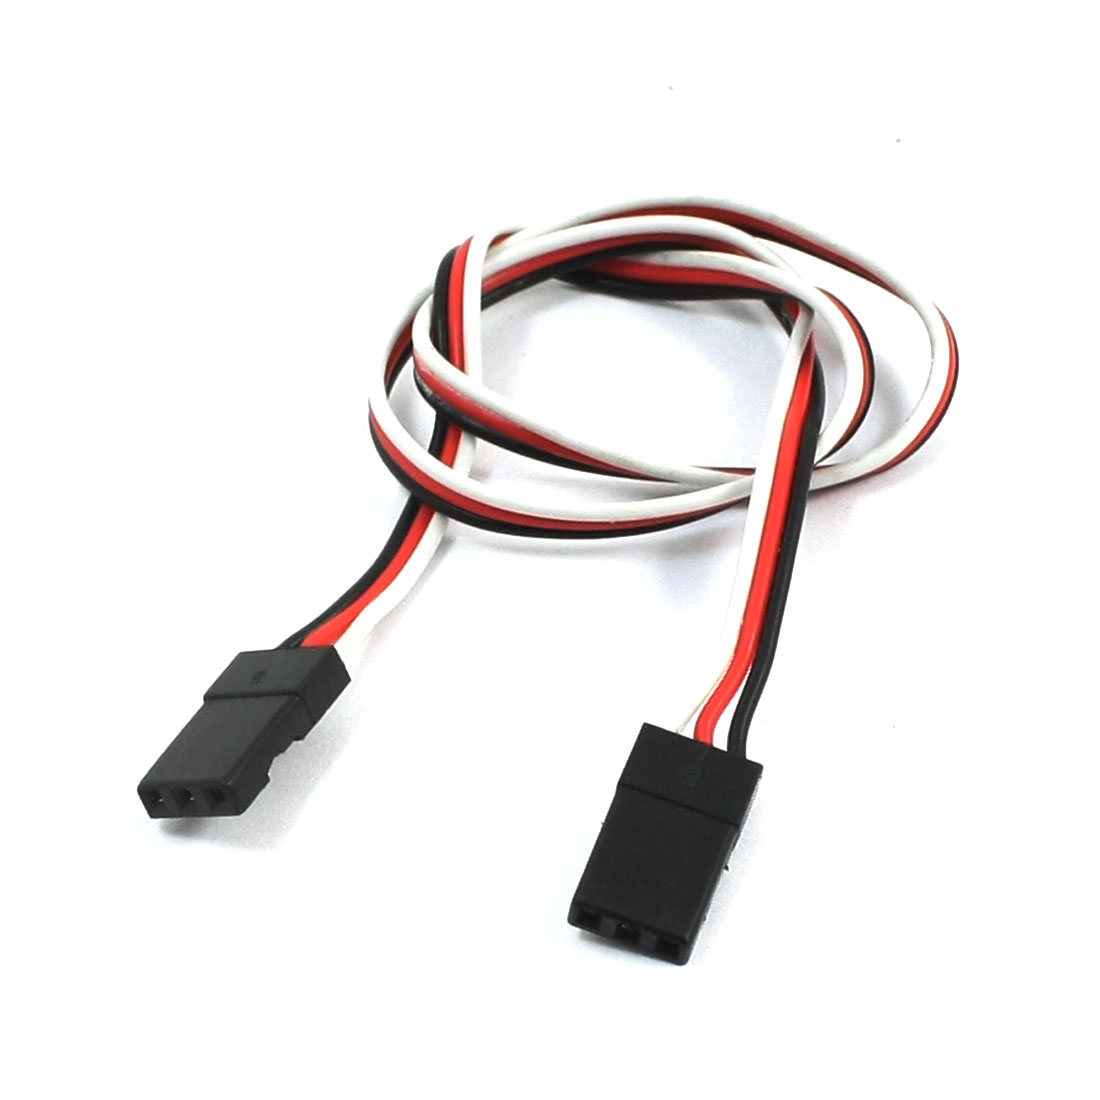 Male to Male J Connector Servo Extension Lead Wire Cable for RC Air Plane 300mm Long